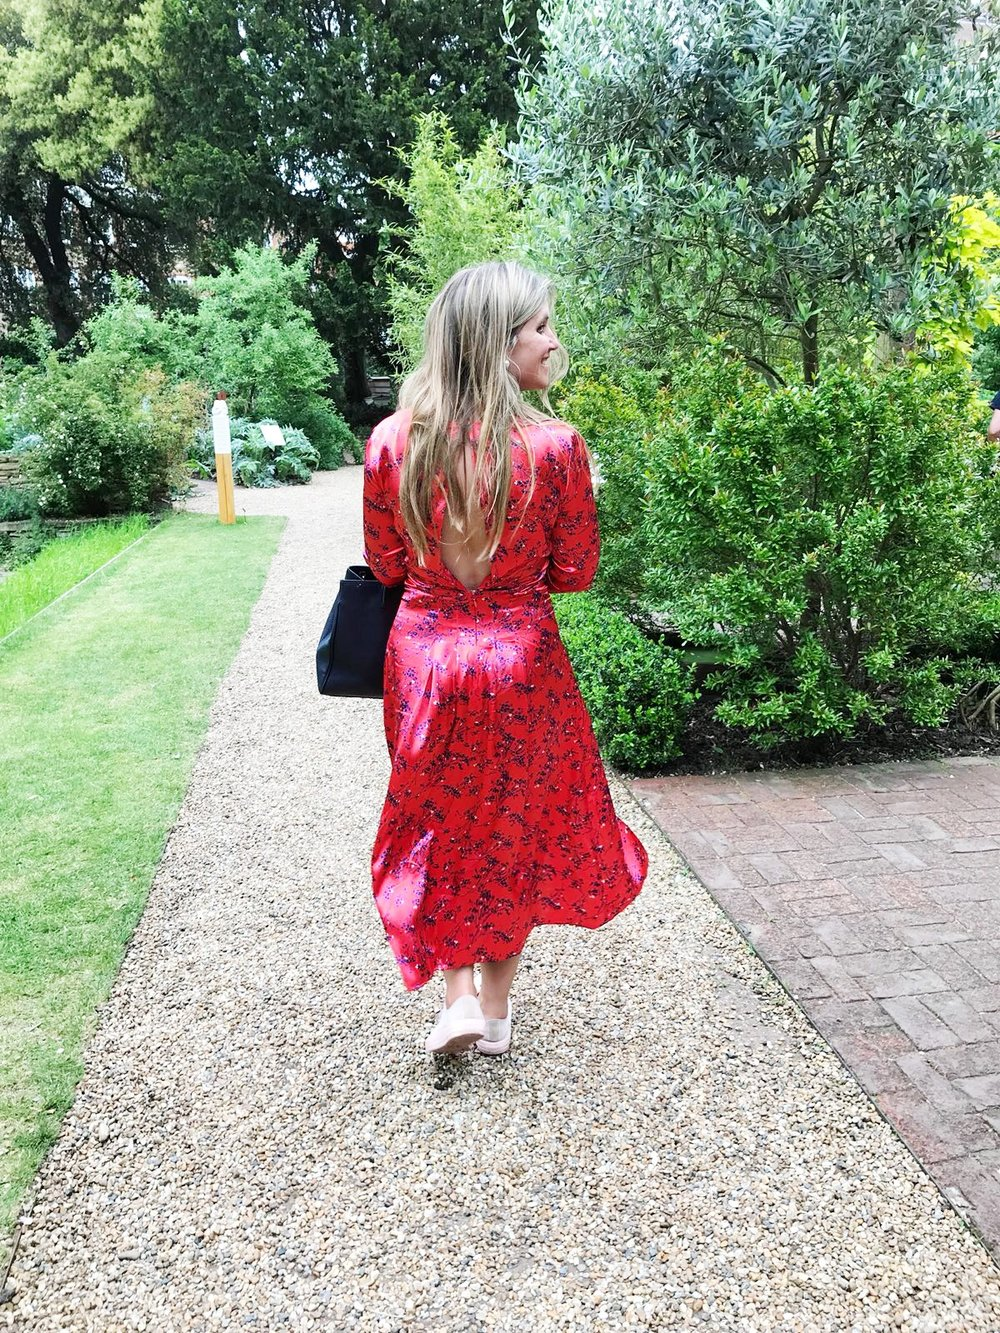 Anna from House Anna in Chelsea, secret garden spaces to visit in London.